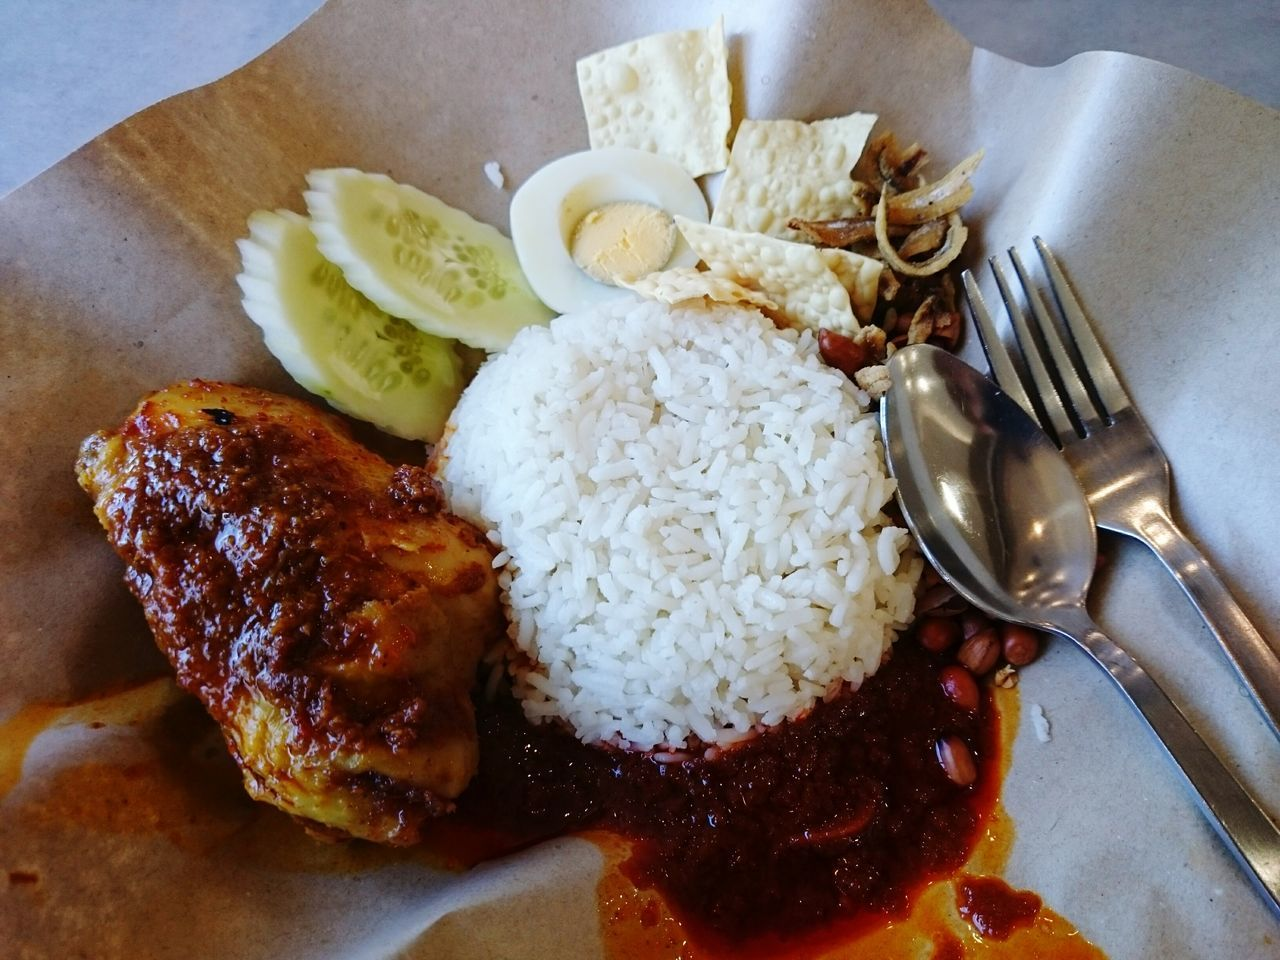 Nasi Lemak Rendang Ayam Food Food And Drink Freshness Healthy Eating Serving Size Plate Ready-to-eat Indoors  No People SLICE Table Healthy Lifestyle Close-up Day EyeEmNewHere Nasi Lemak Malaysian Food Malaysian Culture Malaysiatrulyasia Nasilemakrendang